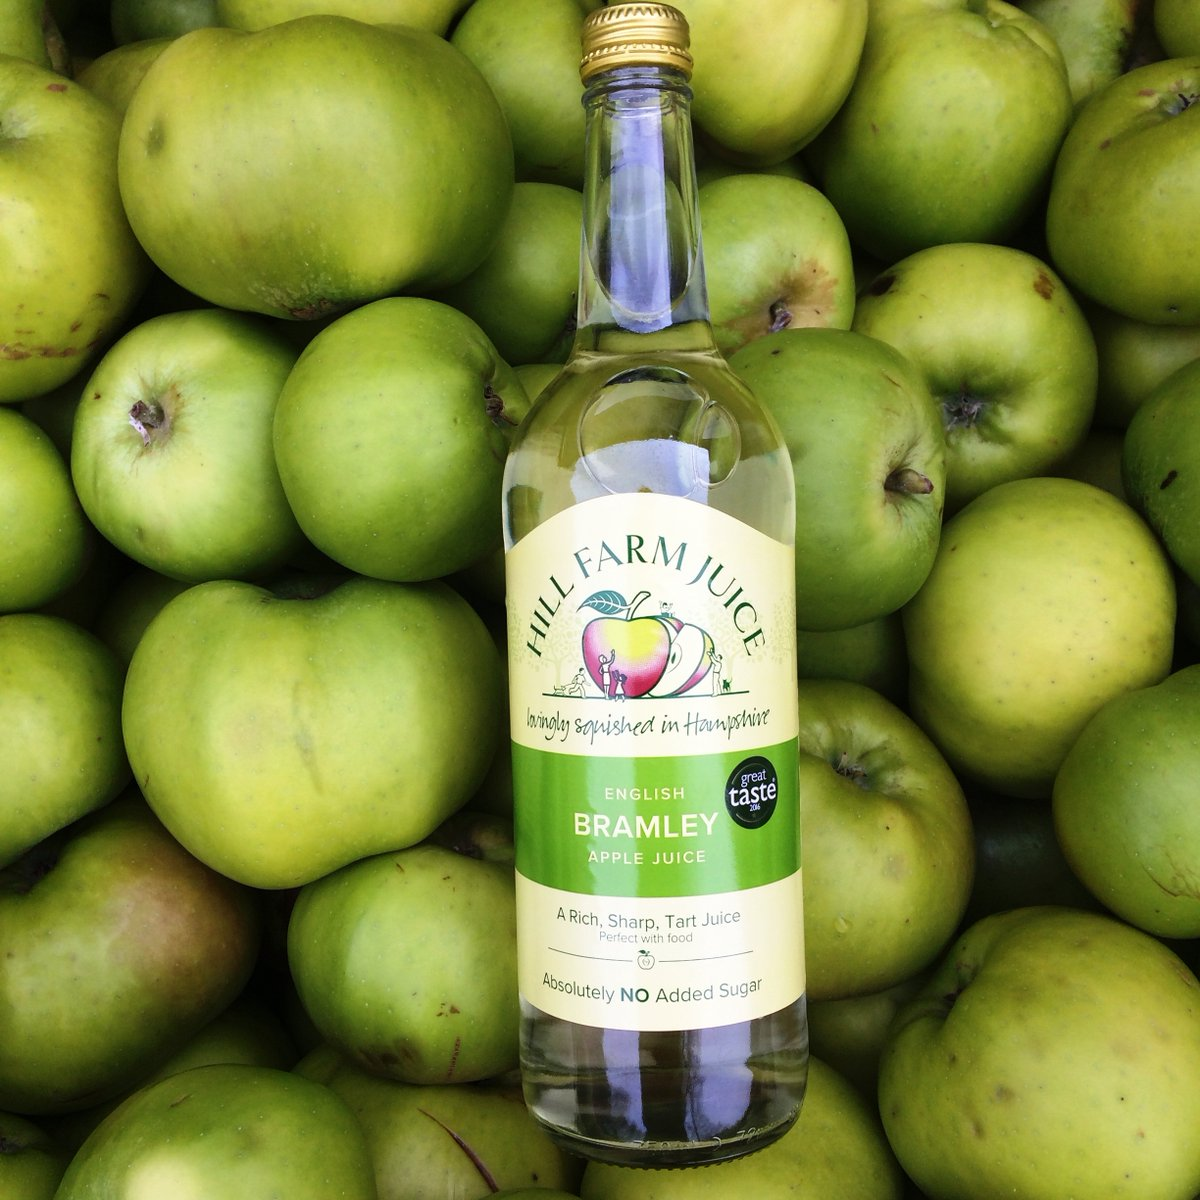 ⭐GREAT TASTE WINNER⭐  Our Bramley Apple Juice has picked up a 1 ⭐ Great Taste Award. This Rich, Sharp and Tart Juice was lastly a winner in 2016 and its great to see that it is still a favourite with the judges.   #gff #greattasteawards #gta2020 #applejuice #bramley https://t.co/zh6j8NJE7v